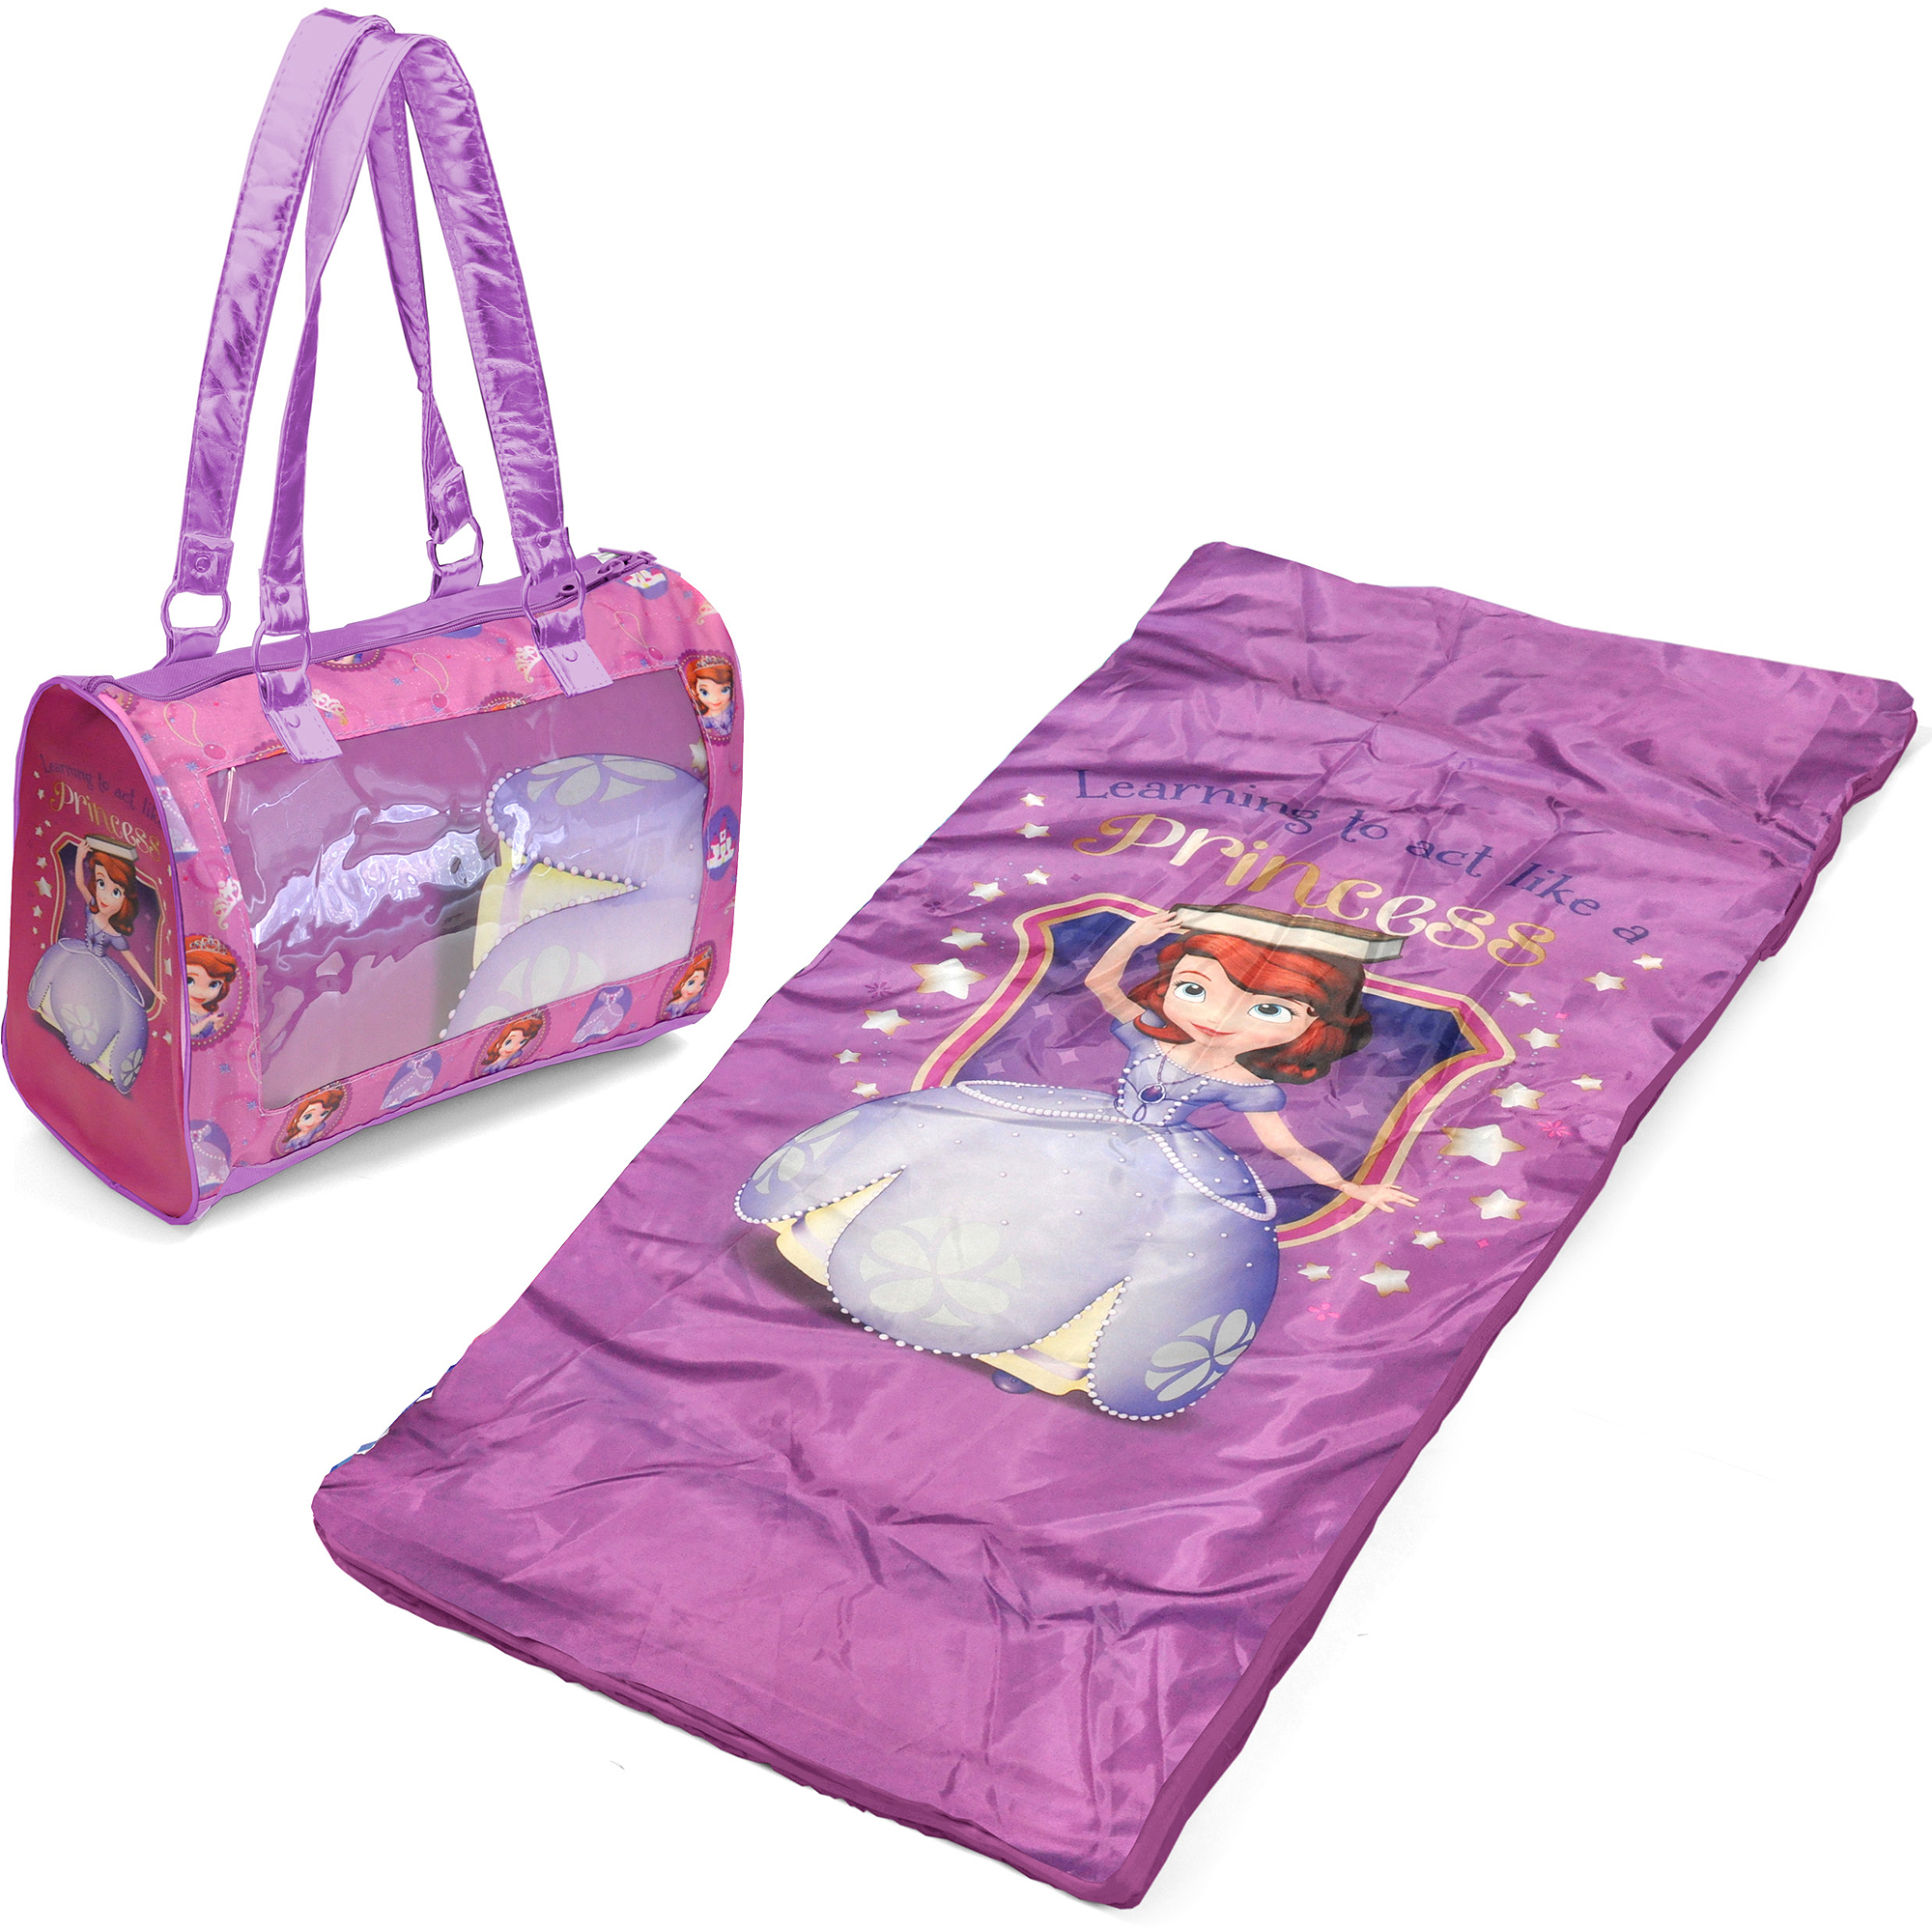 Disney Sofia The First Toddler Sleepover Set Nap Mat With Duffle